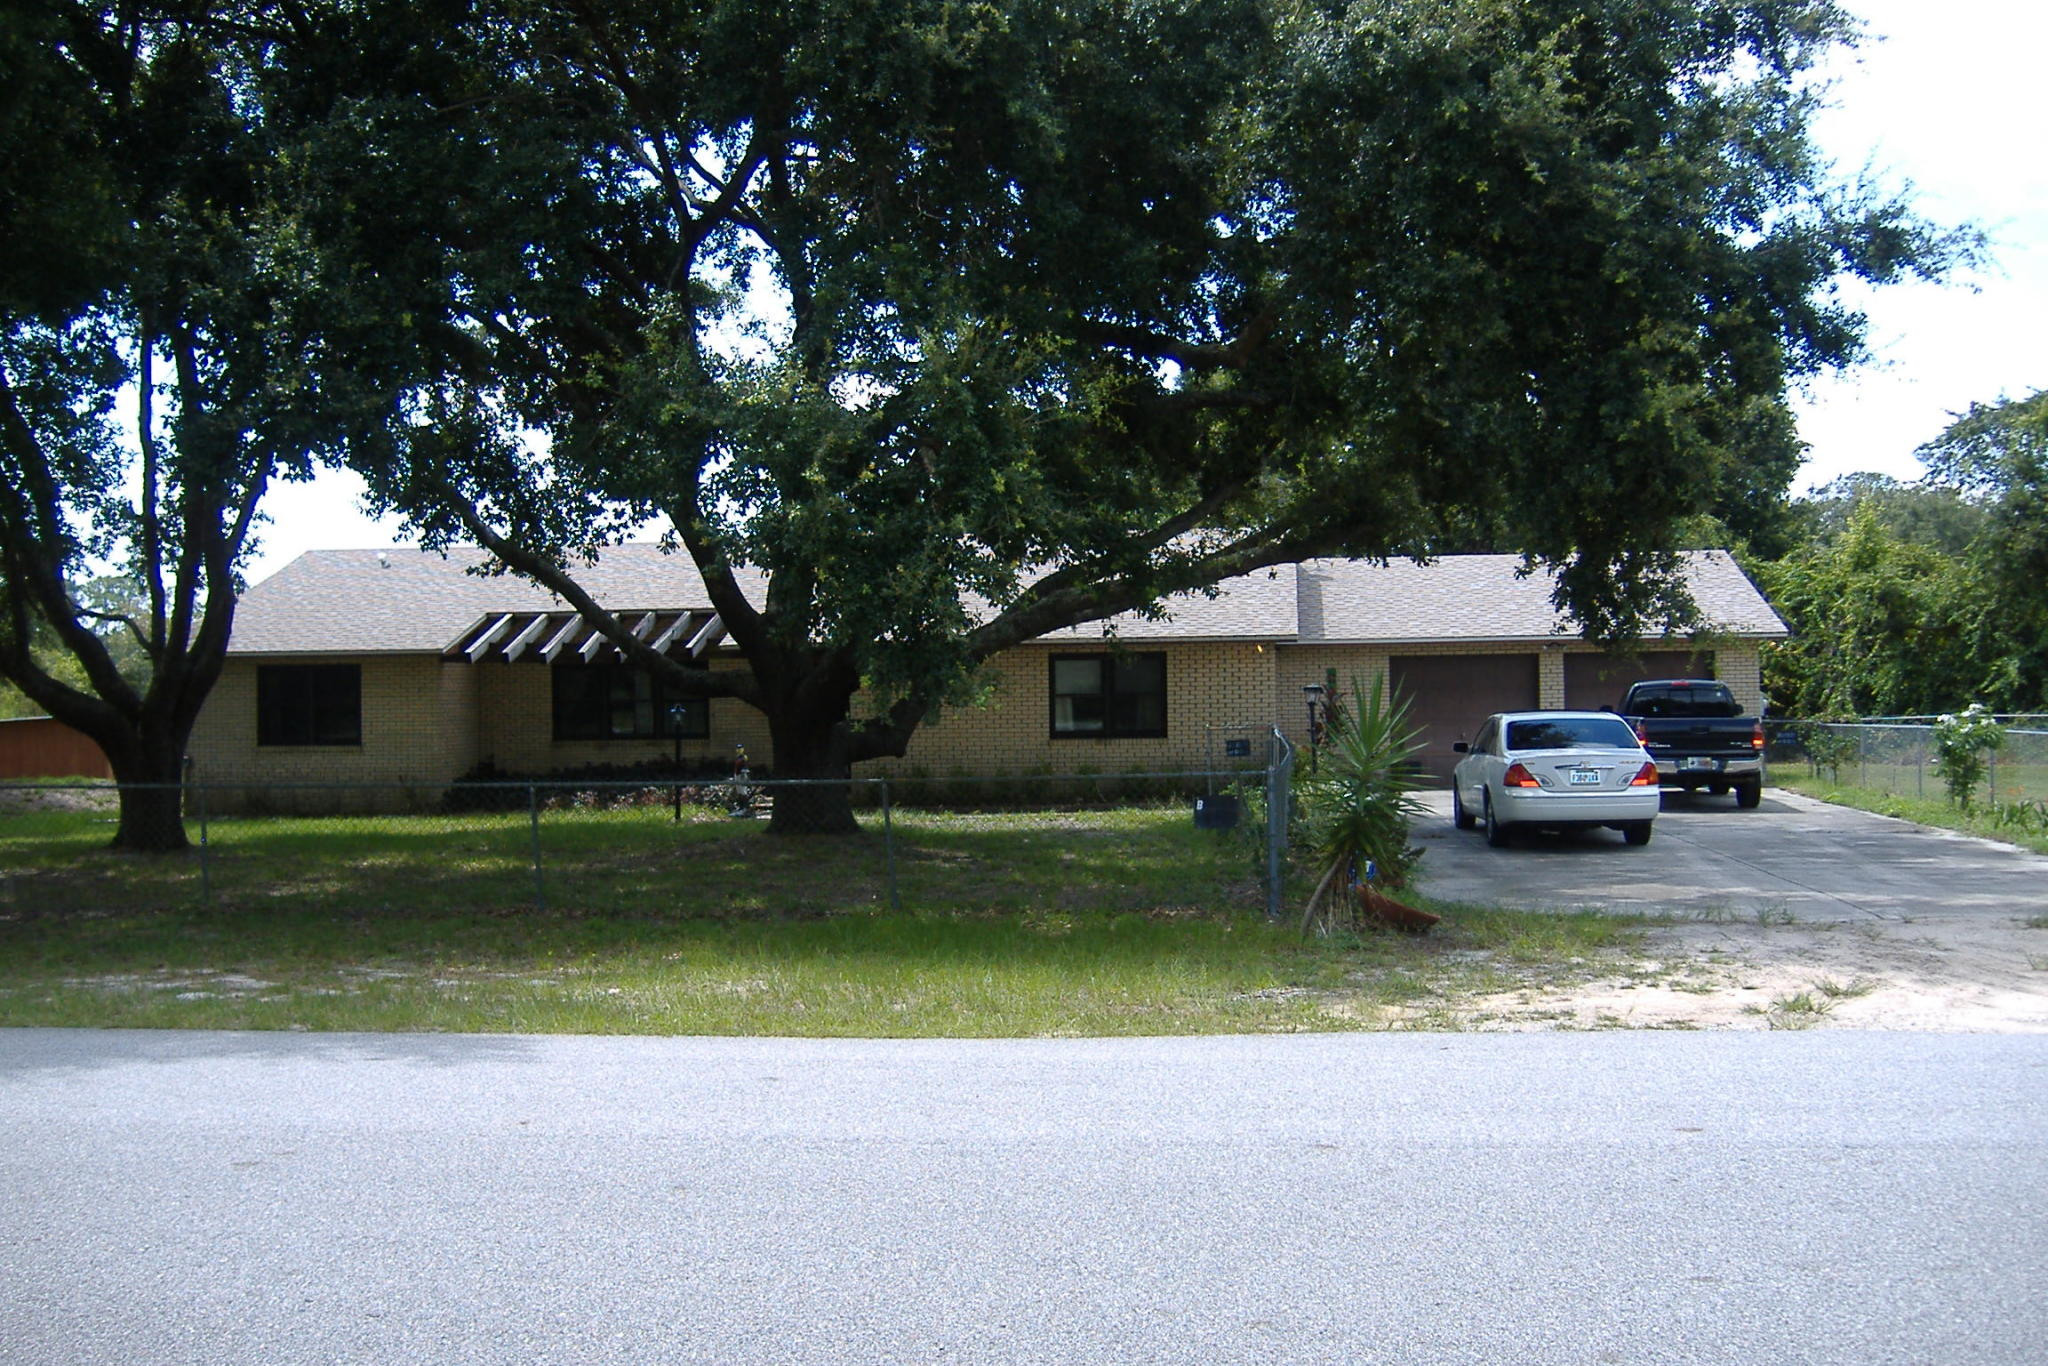 17248 arrowhead blvd winter garden fl 34787 estimate and home